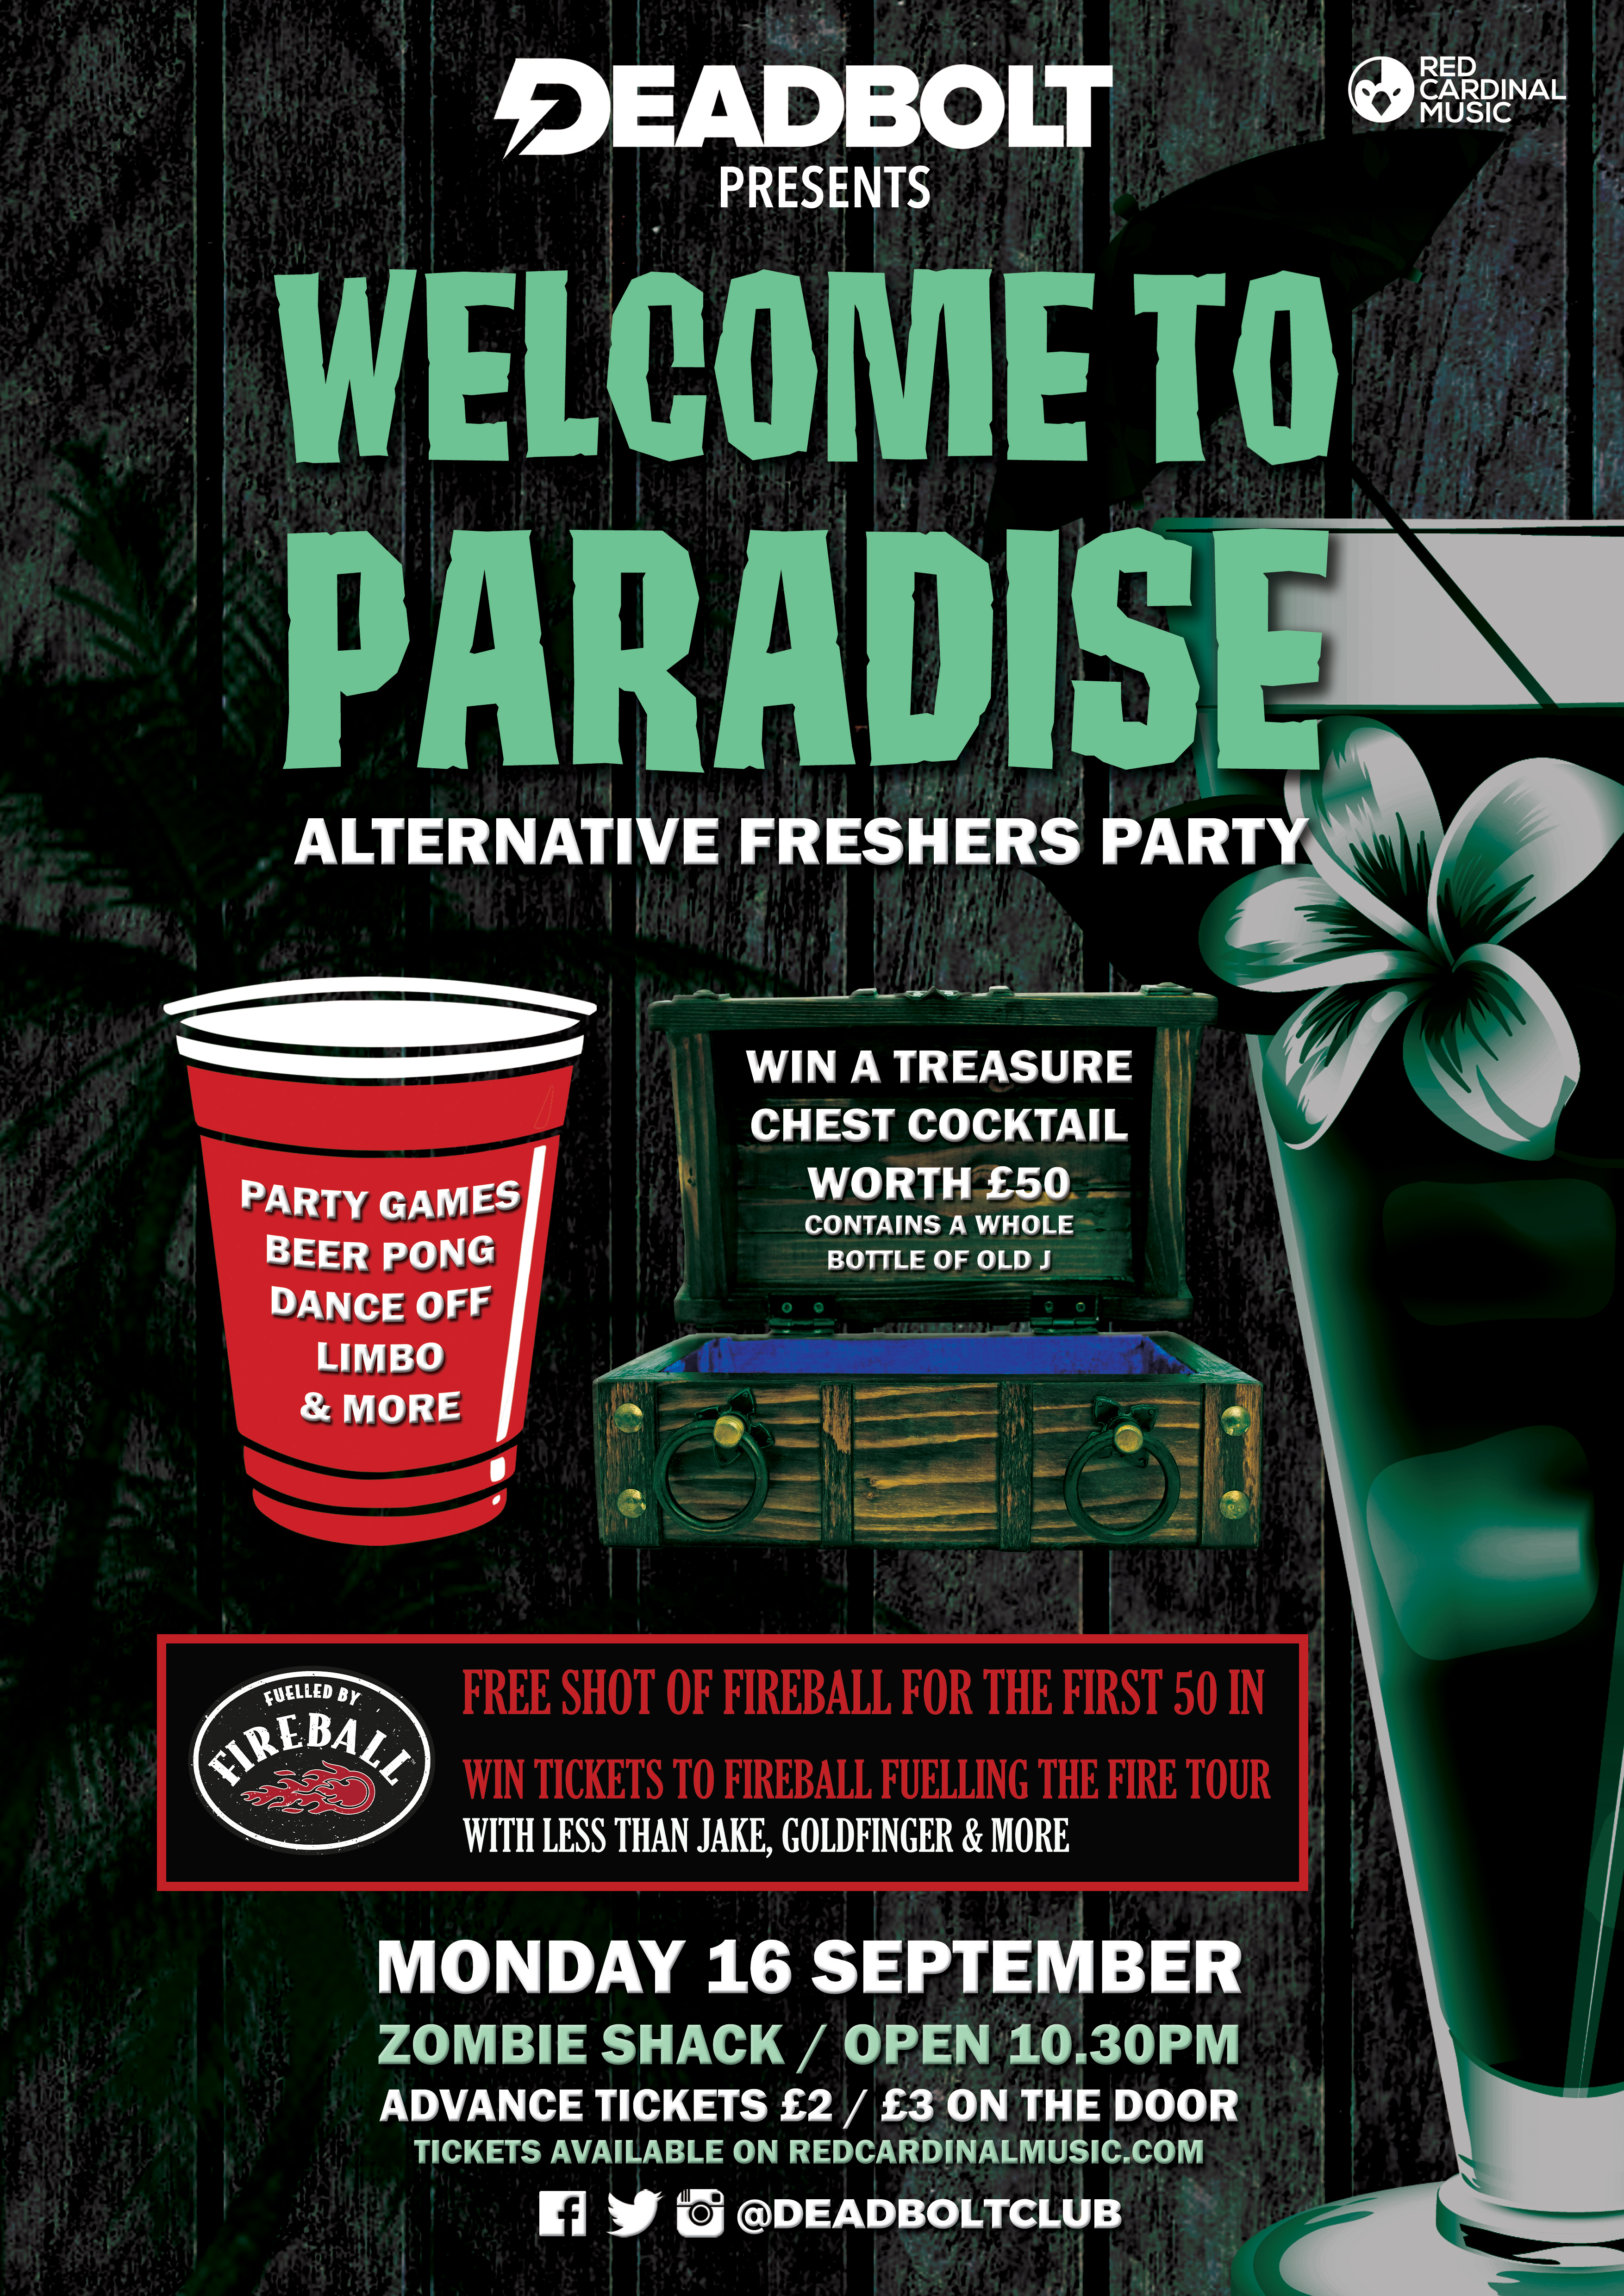 Deadbolt Welcome To Paradise - Freshers 2019 Alternative Freshers Party - Red Cardinal Music